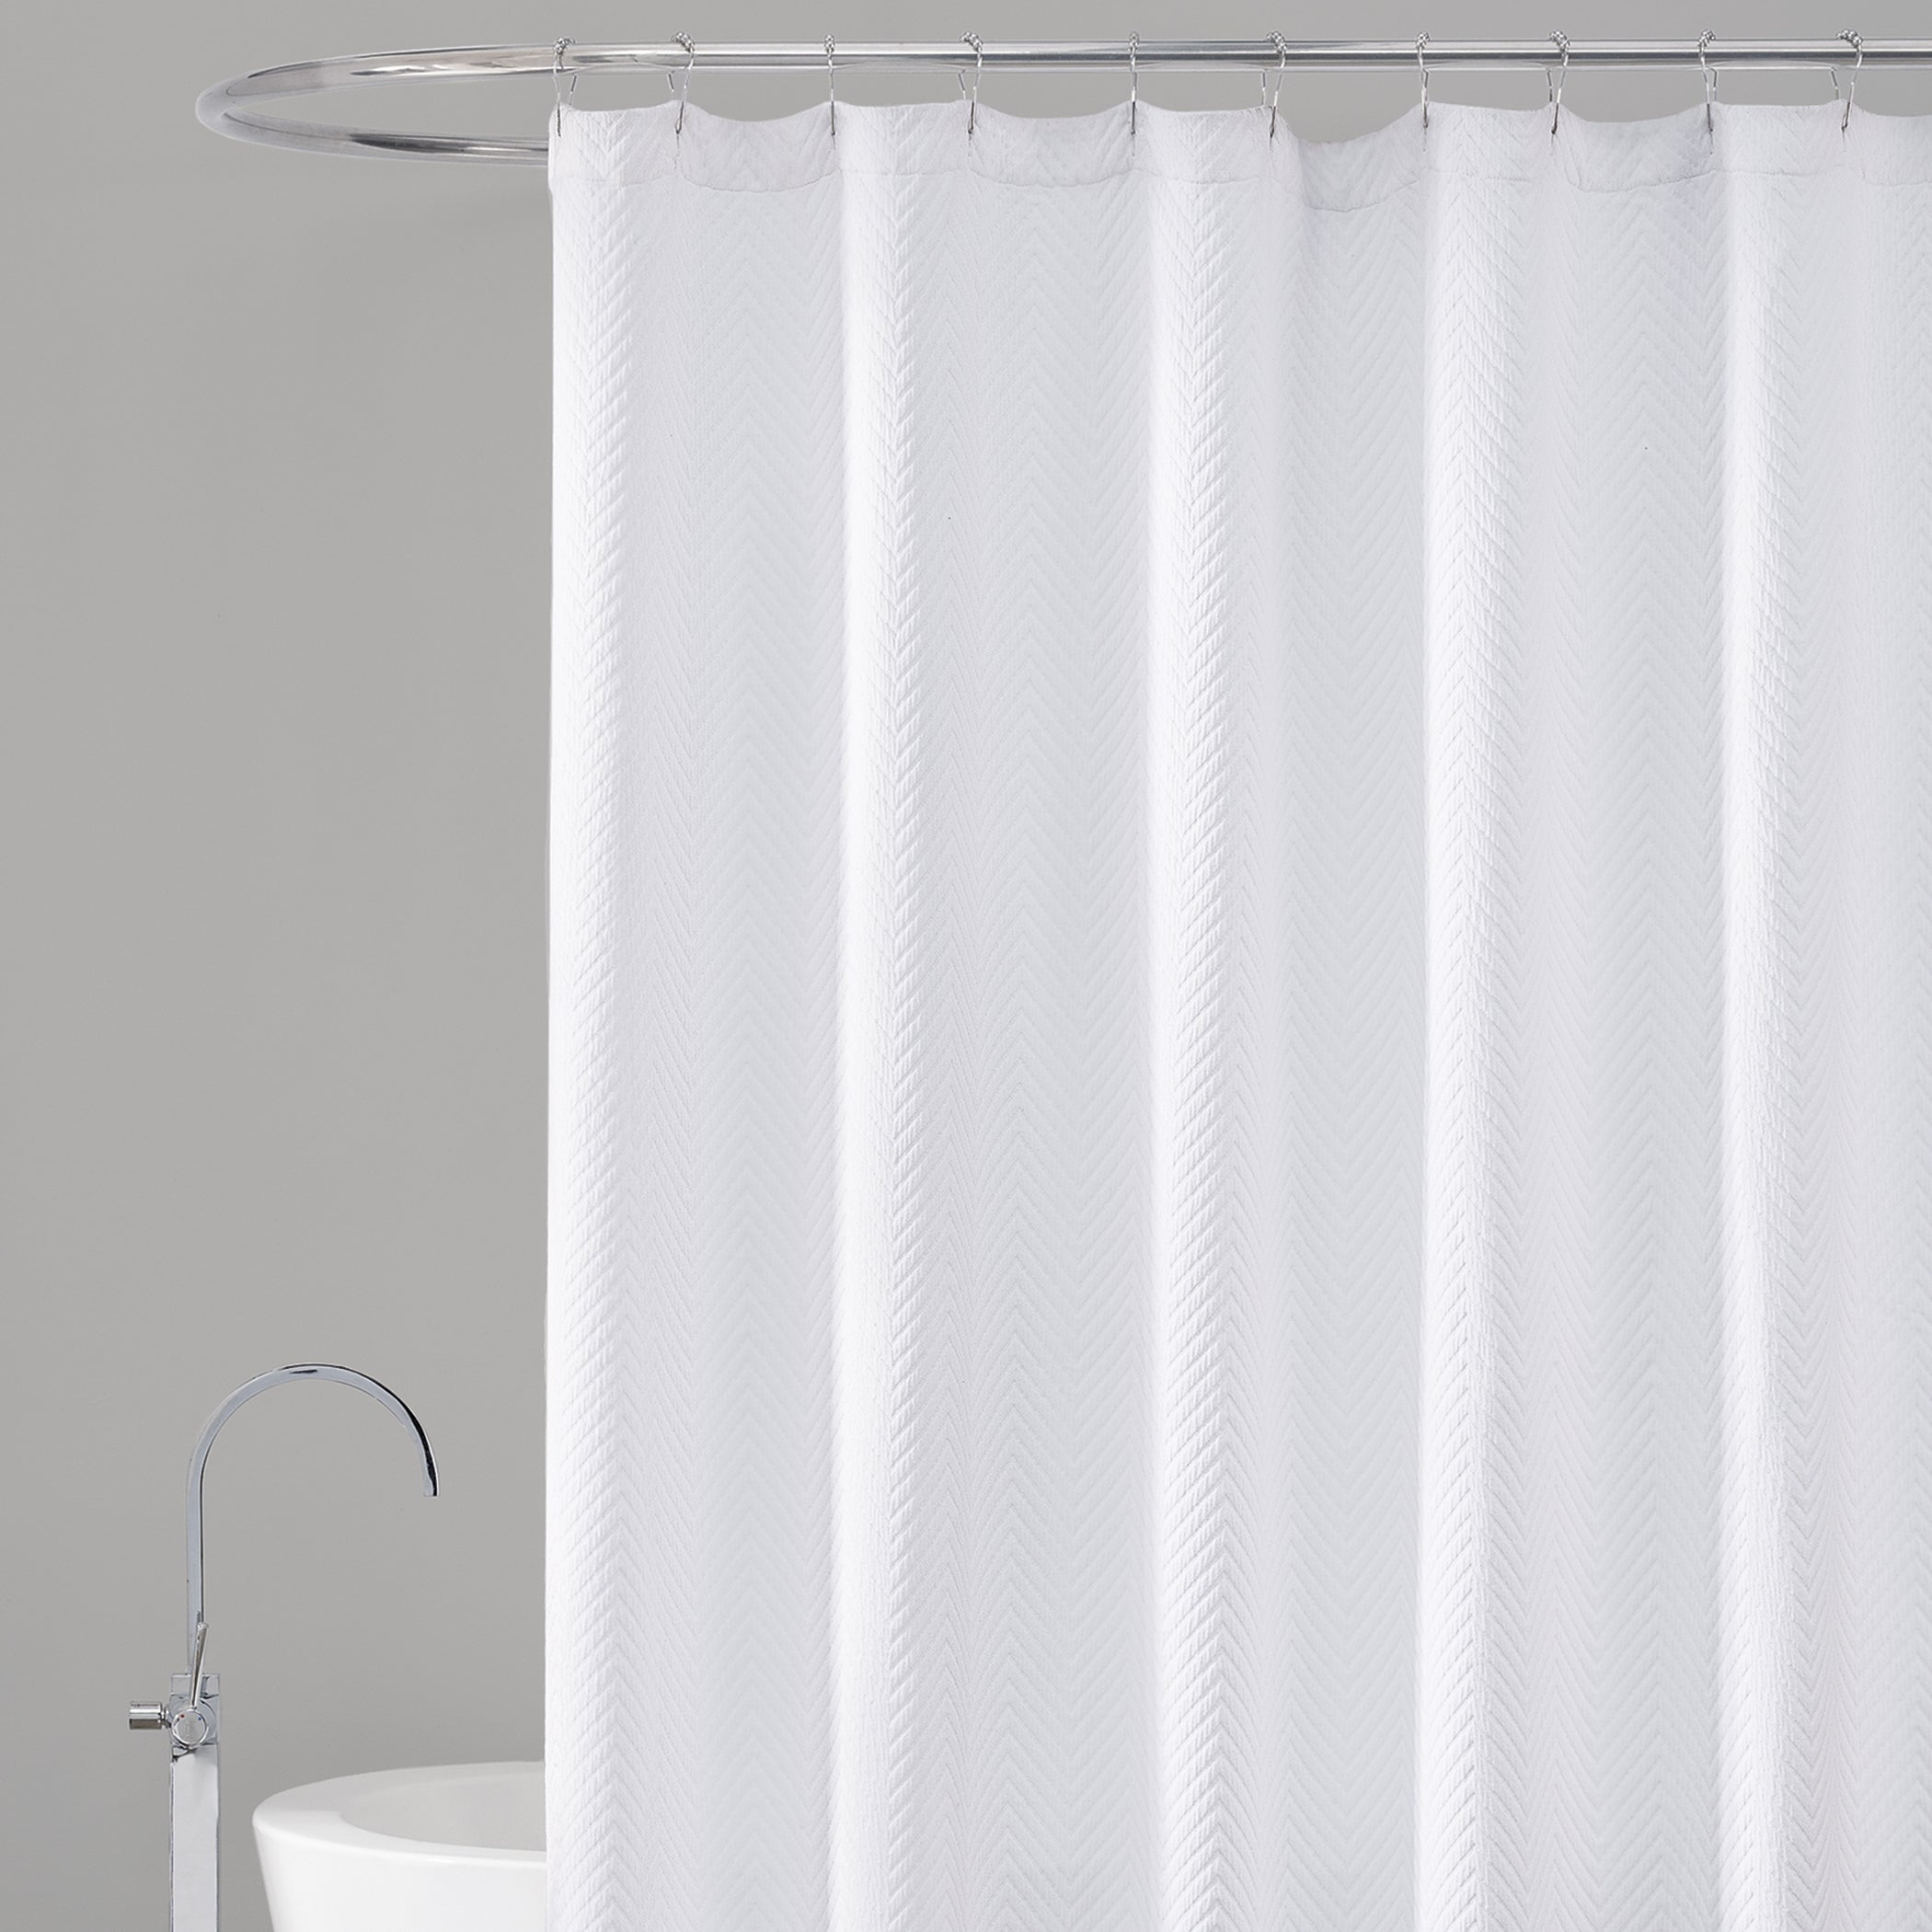 bq white at l q curtains mm departments cooke star drawa silver shower prd curtain diy waffle b lewis